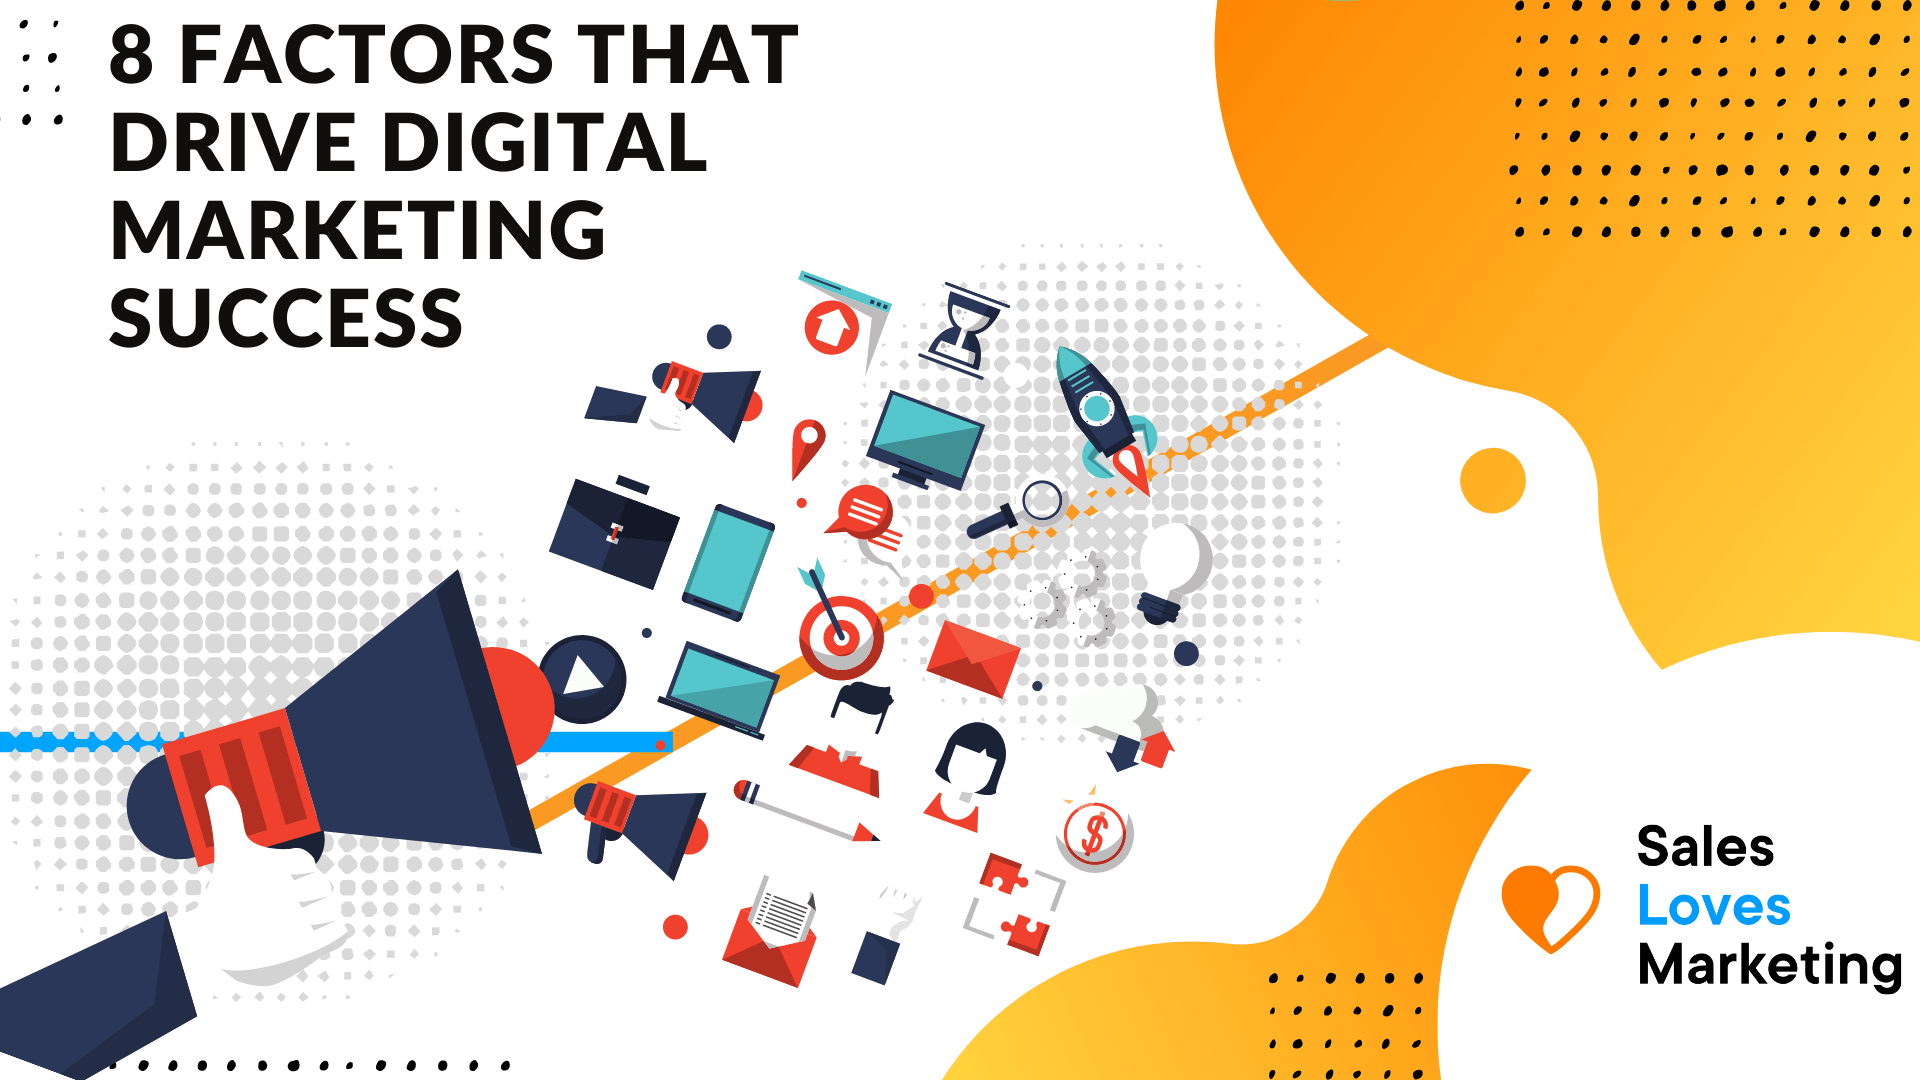 Digital marketing factors which will drive success